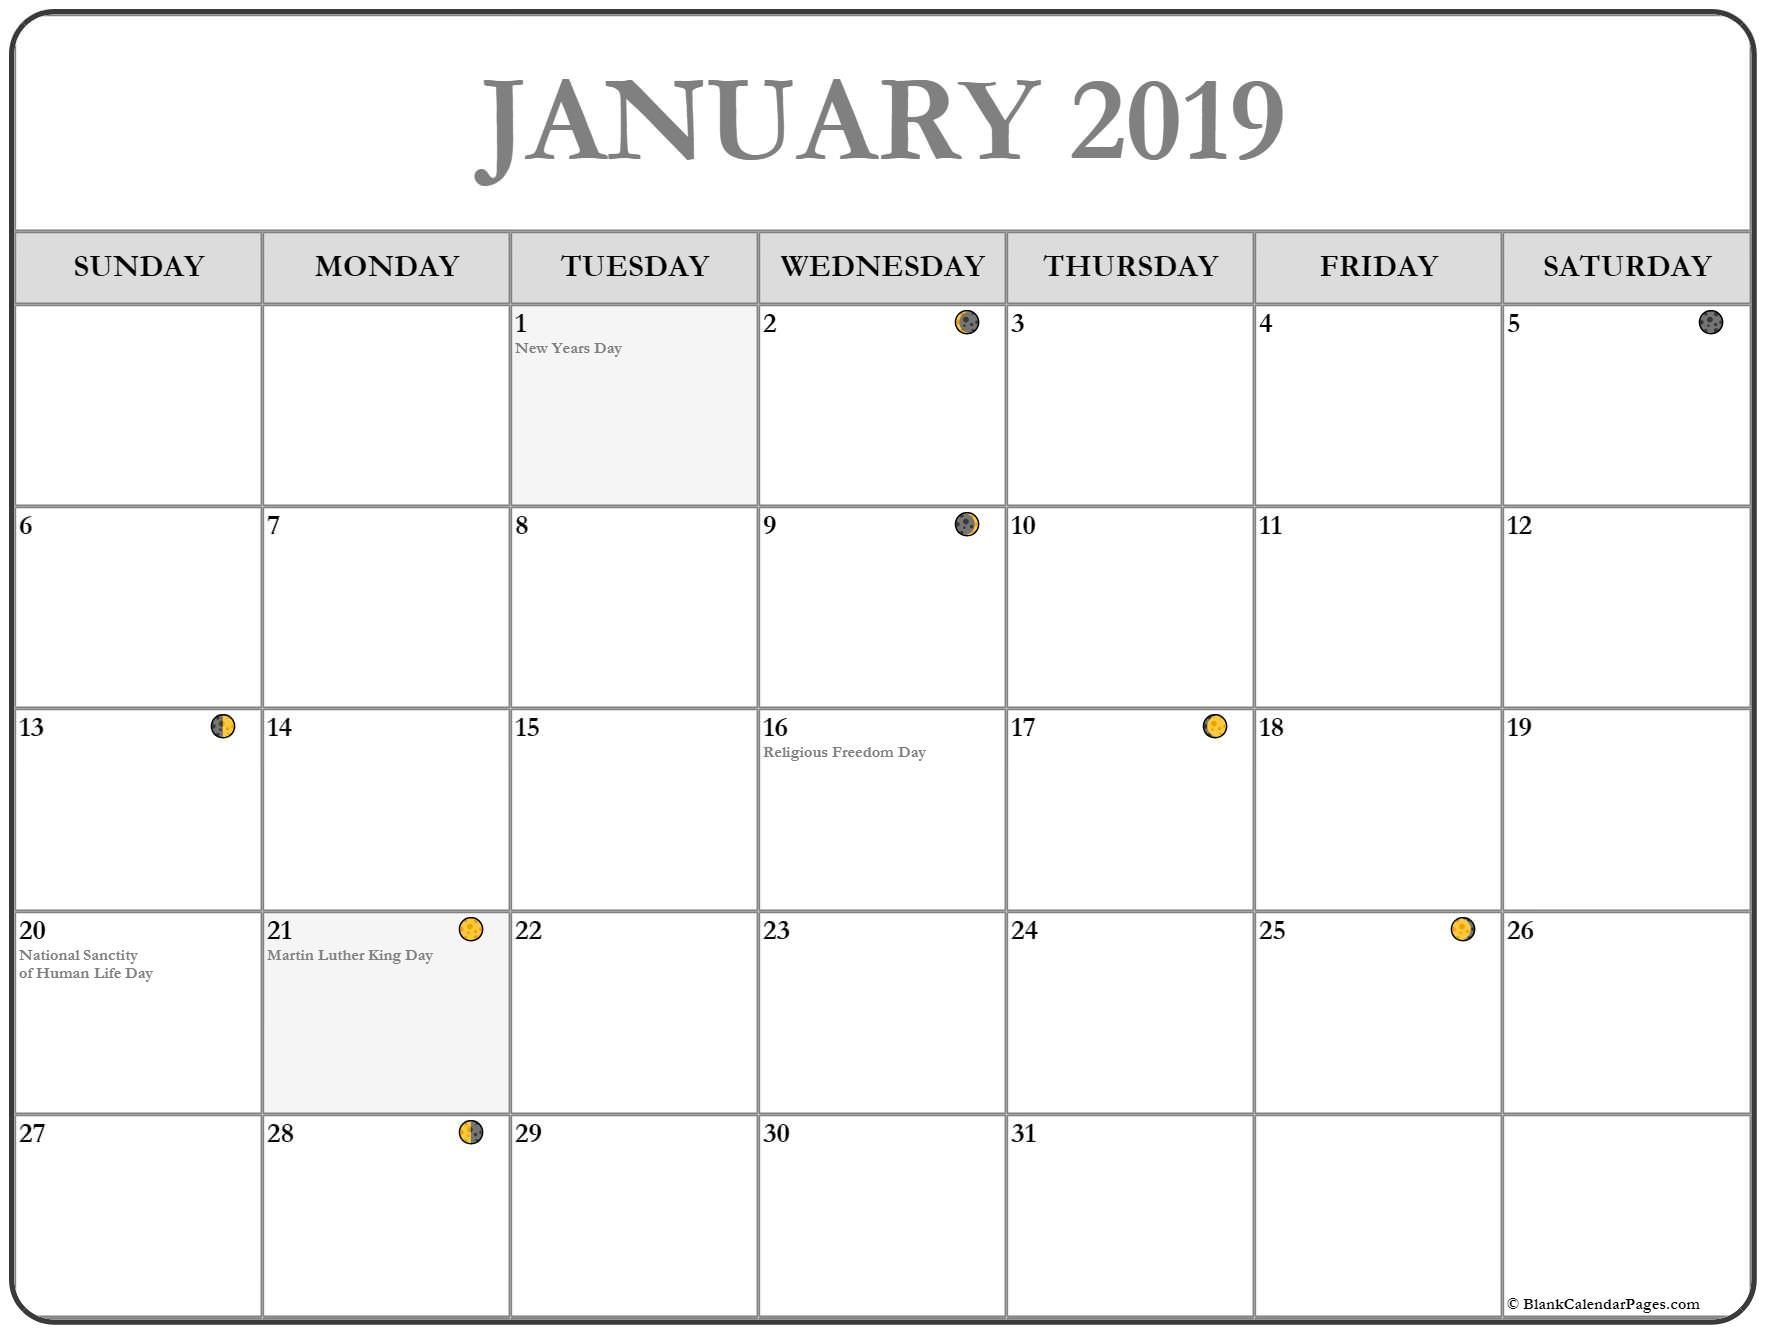 Calendar January Moon Phase